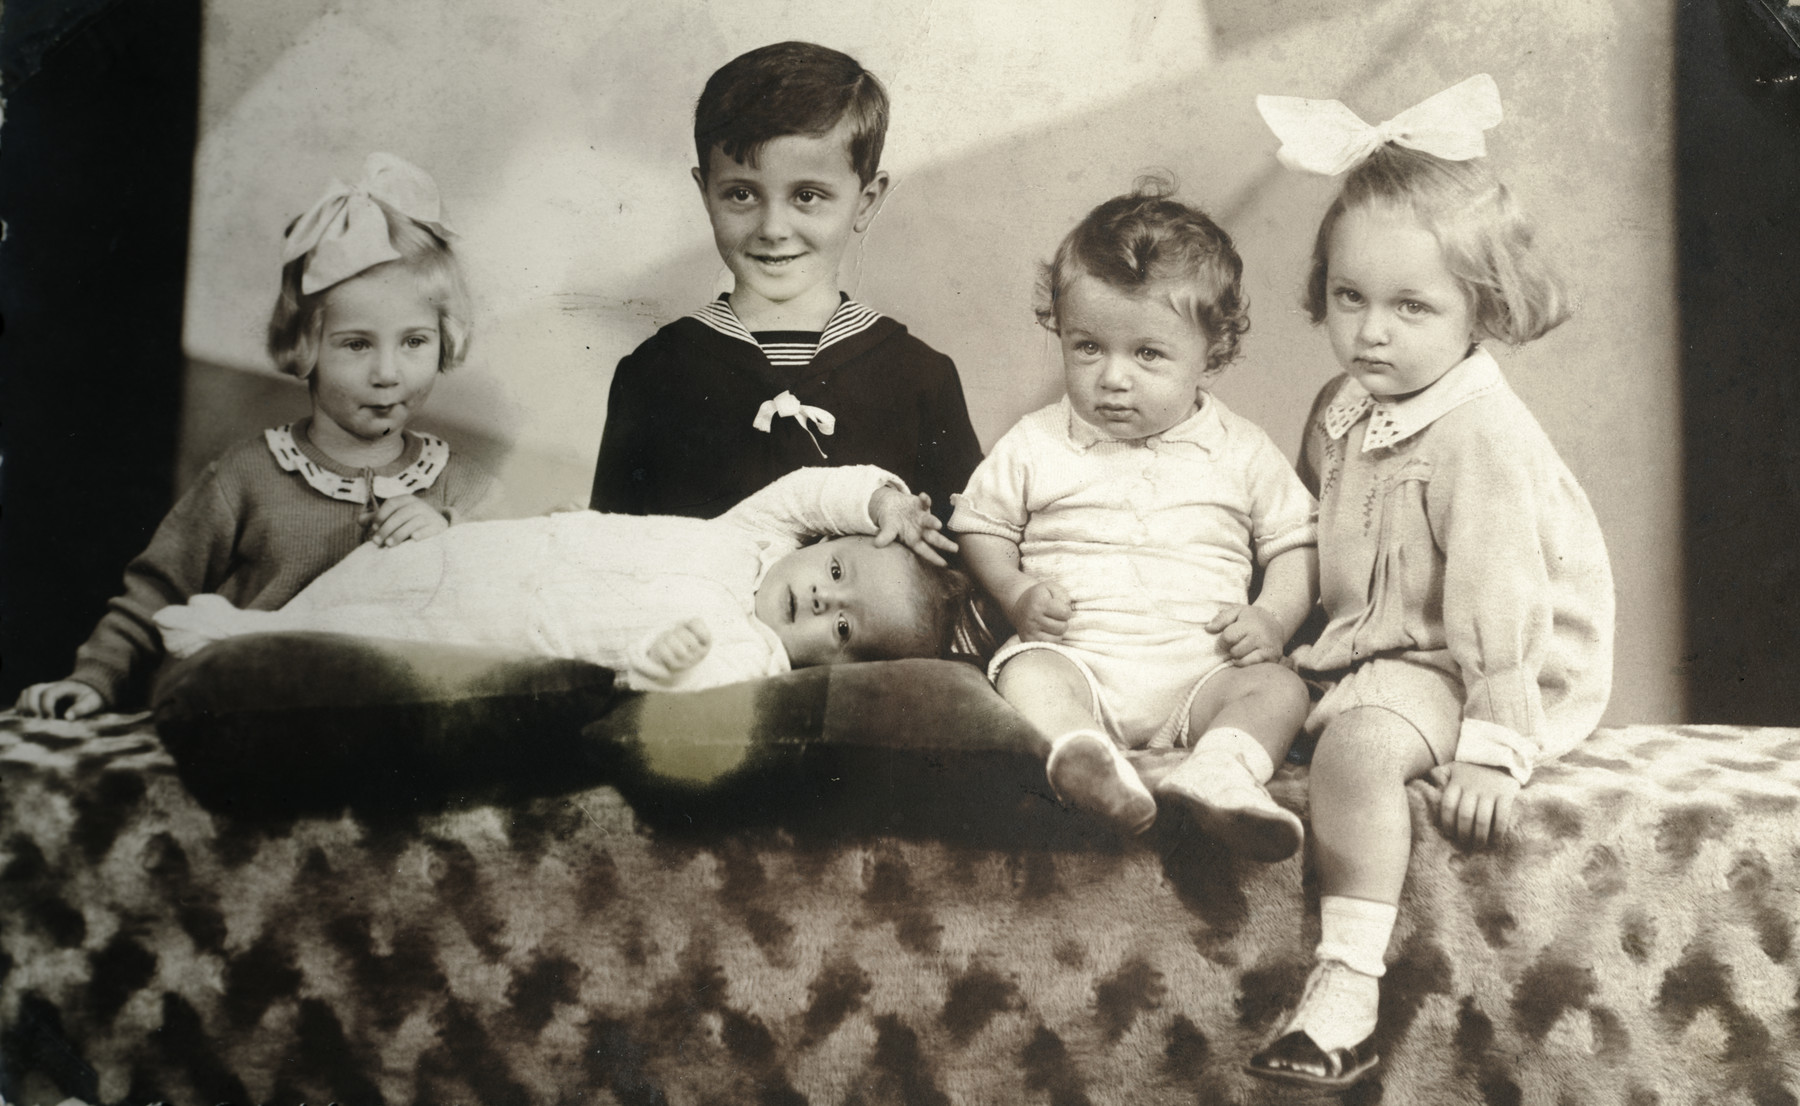 Studio portrait of five Hungarian Jewish cousins.  Judith Schonfeld is pictured on the far left.  In the center are Toni Itzkovits and his brothers (all perished).  Marika is on the far right.